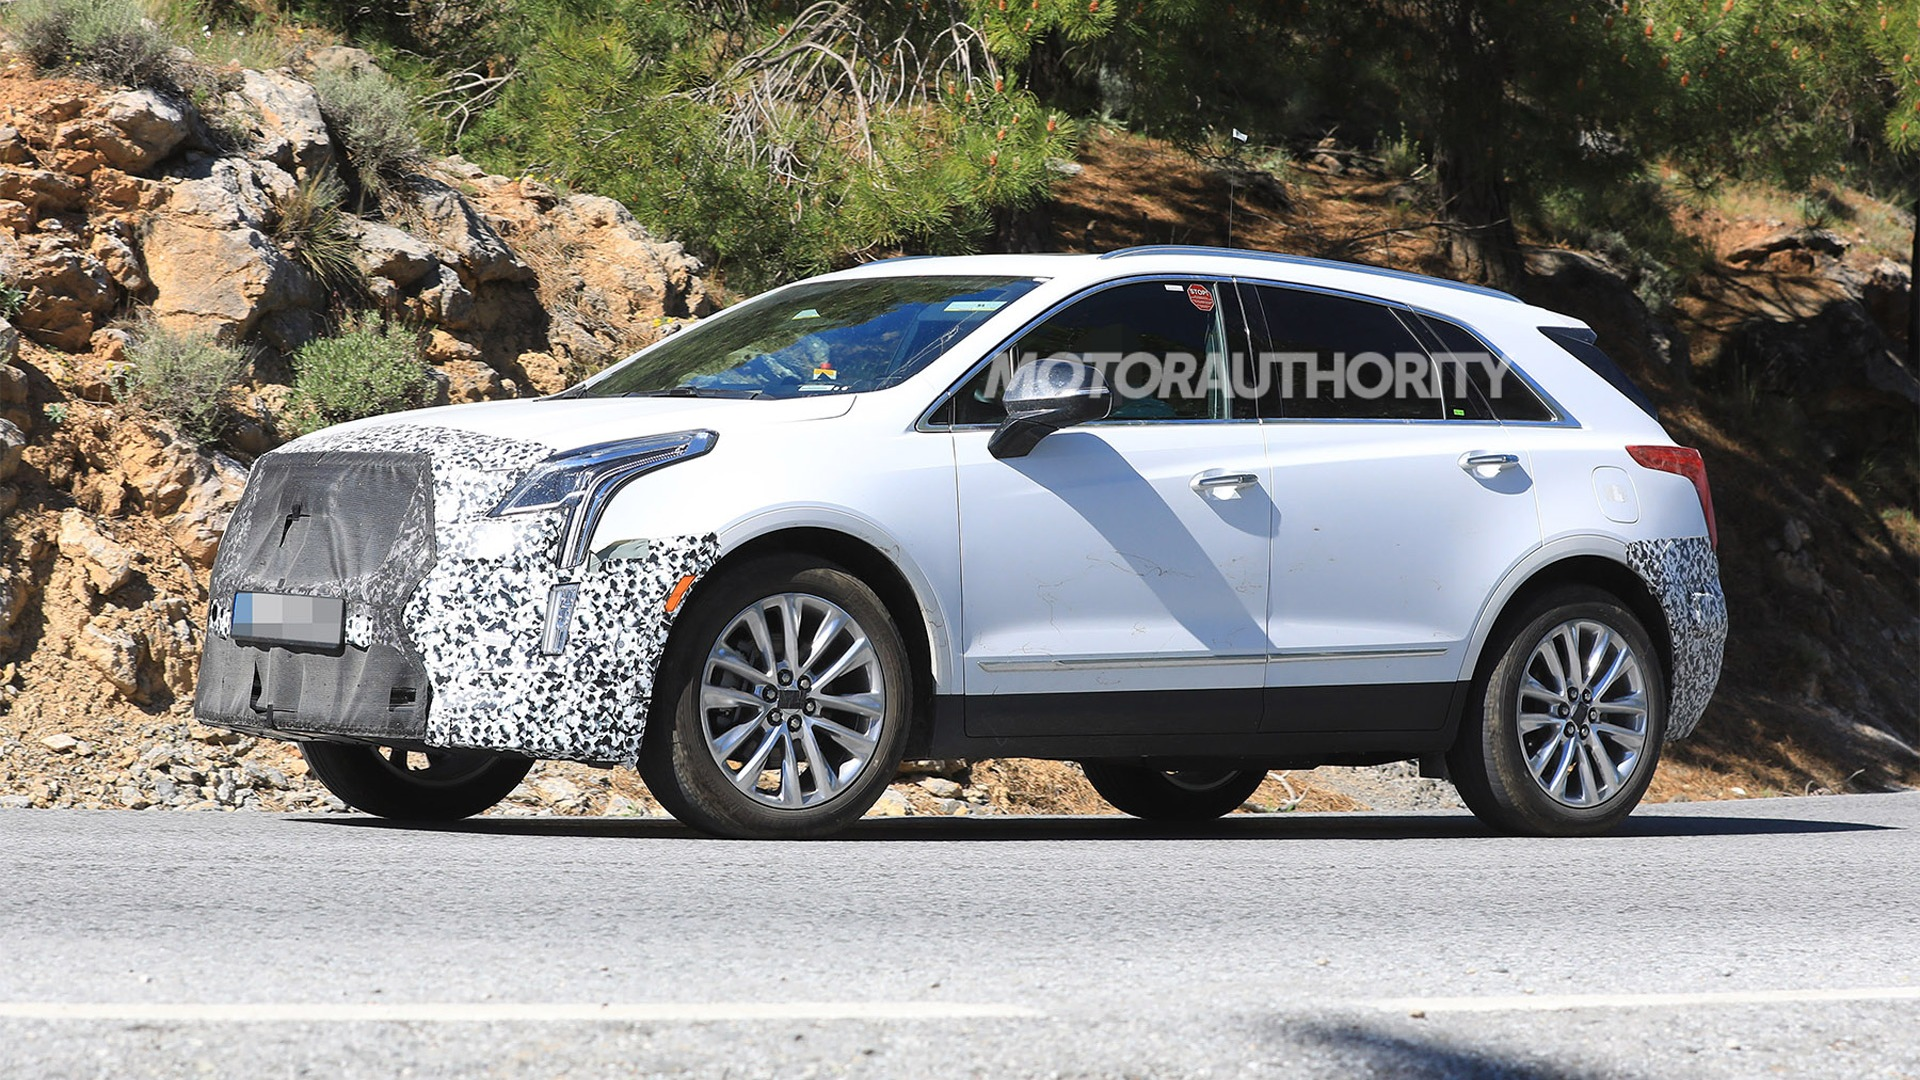 59 New 2020 Spy Shots Cadillac Xt5 Exterior and Interior